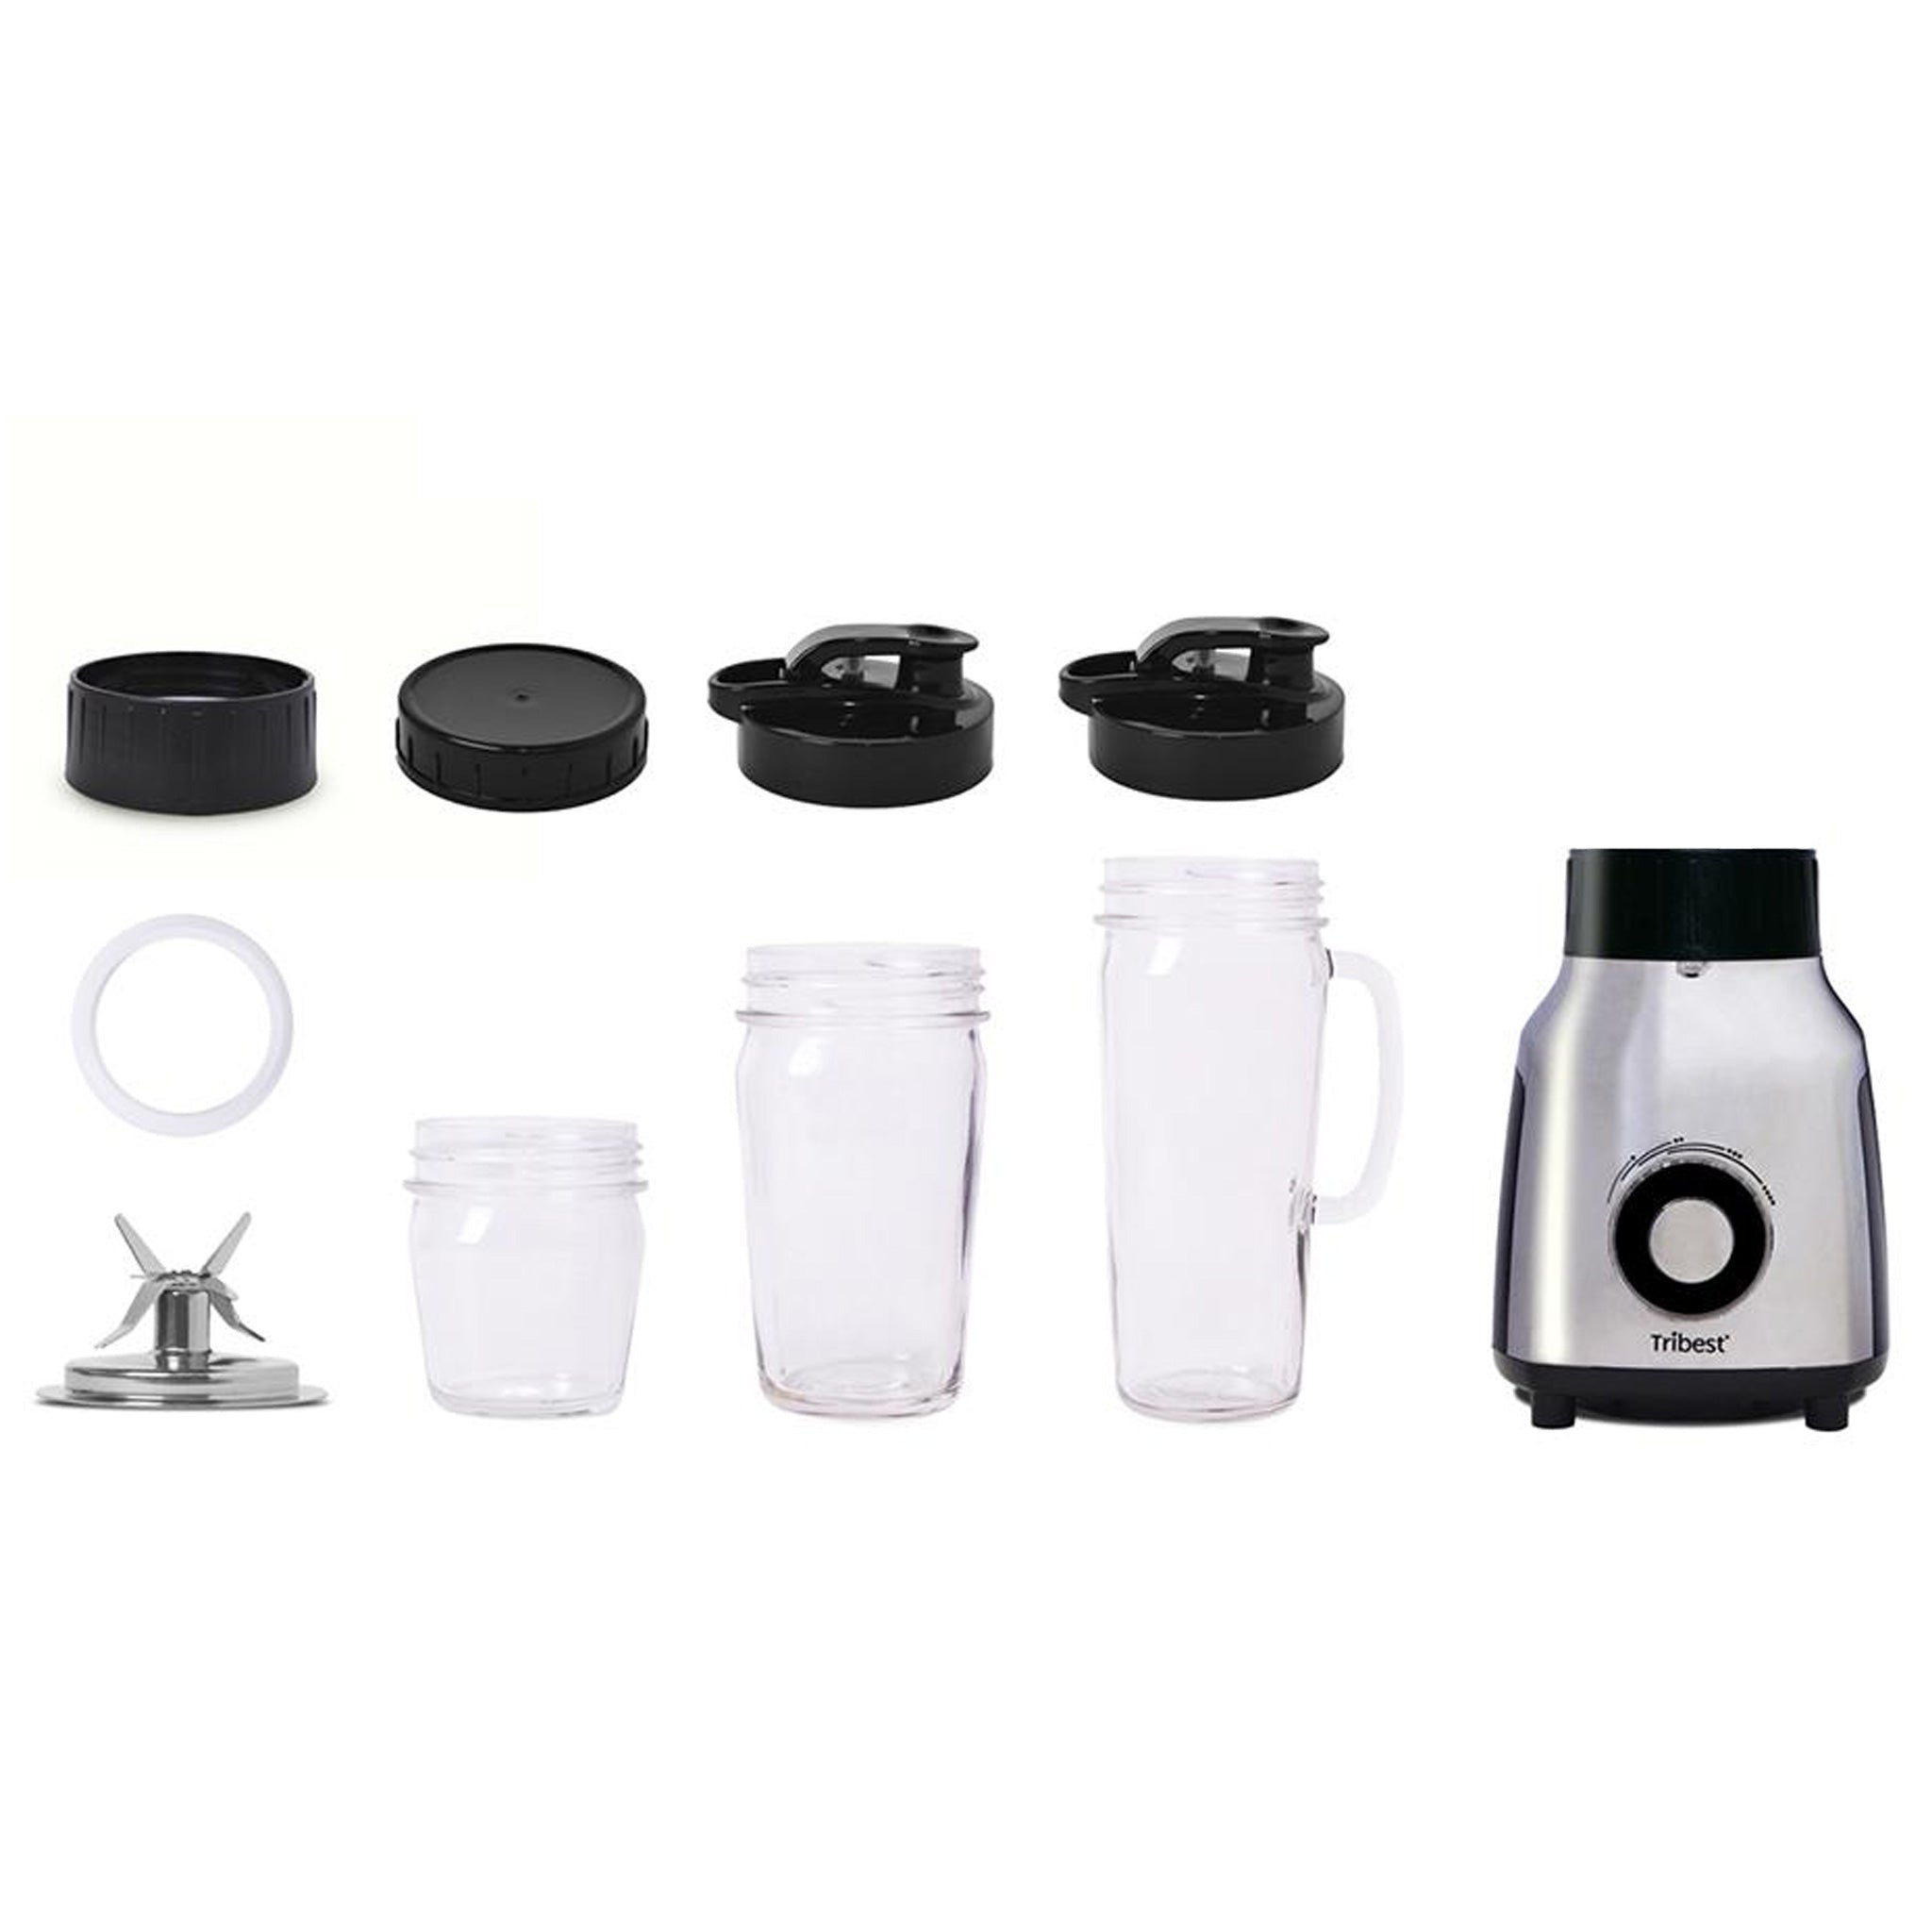 Glass Personal Blender Single-Serving Blender PBG-5050-A - Parts - Tribest